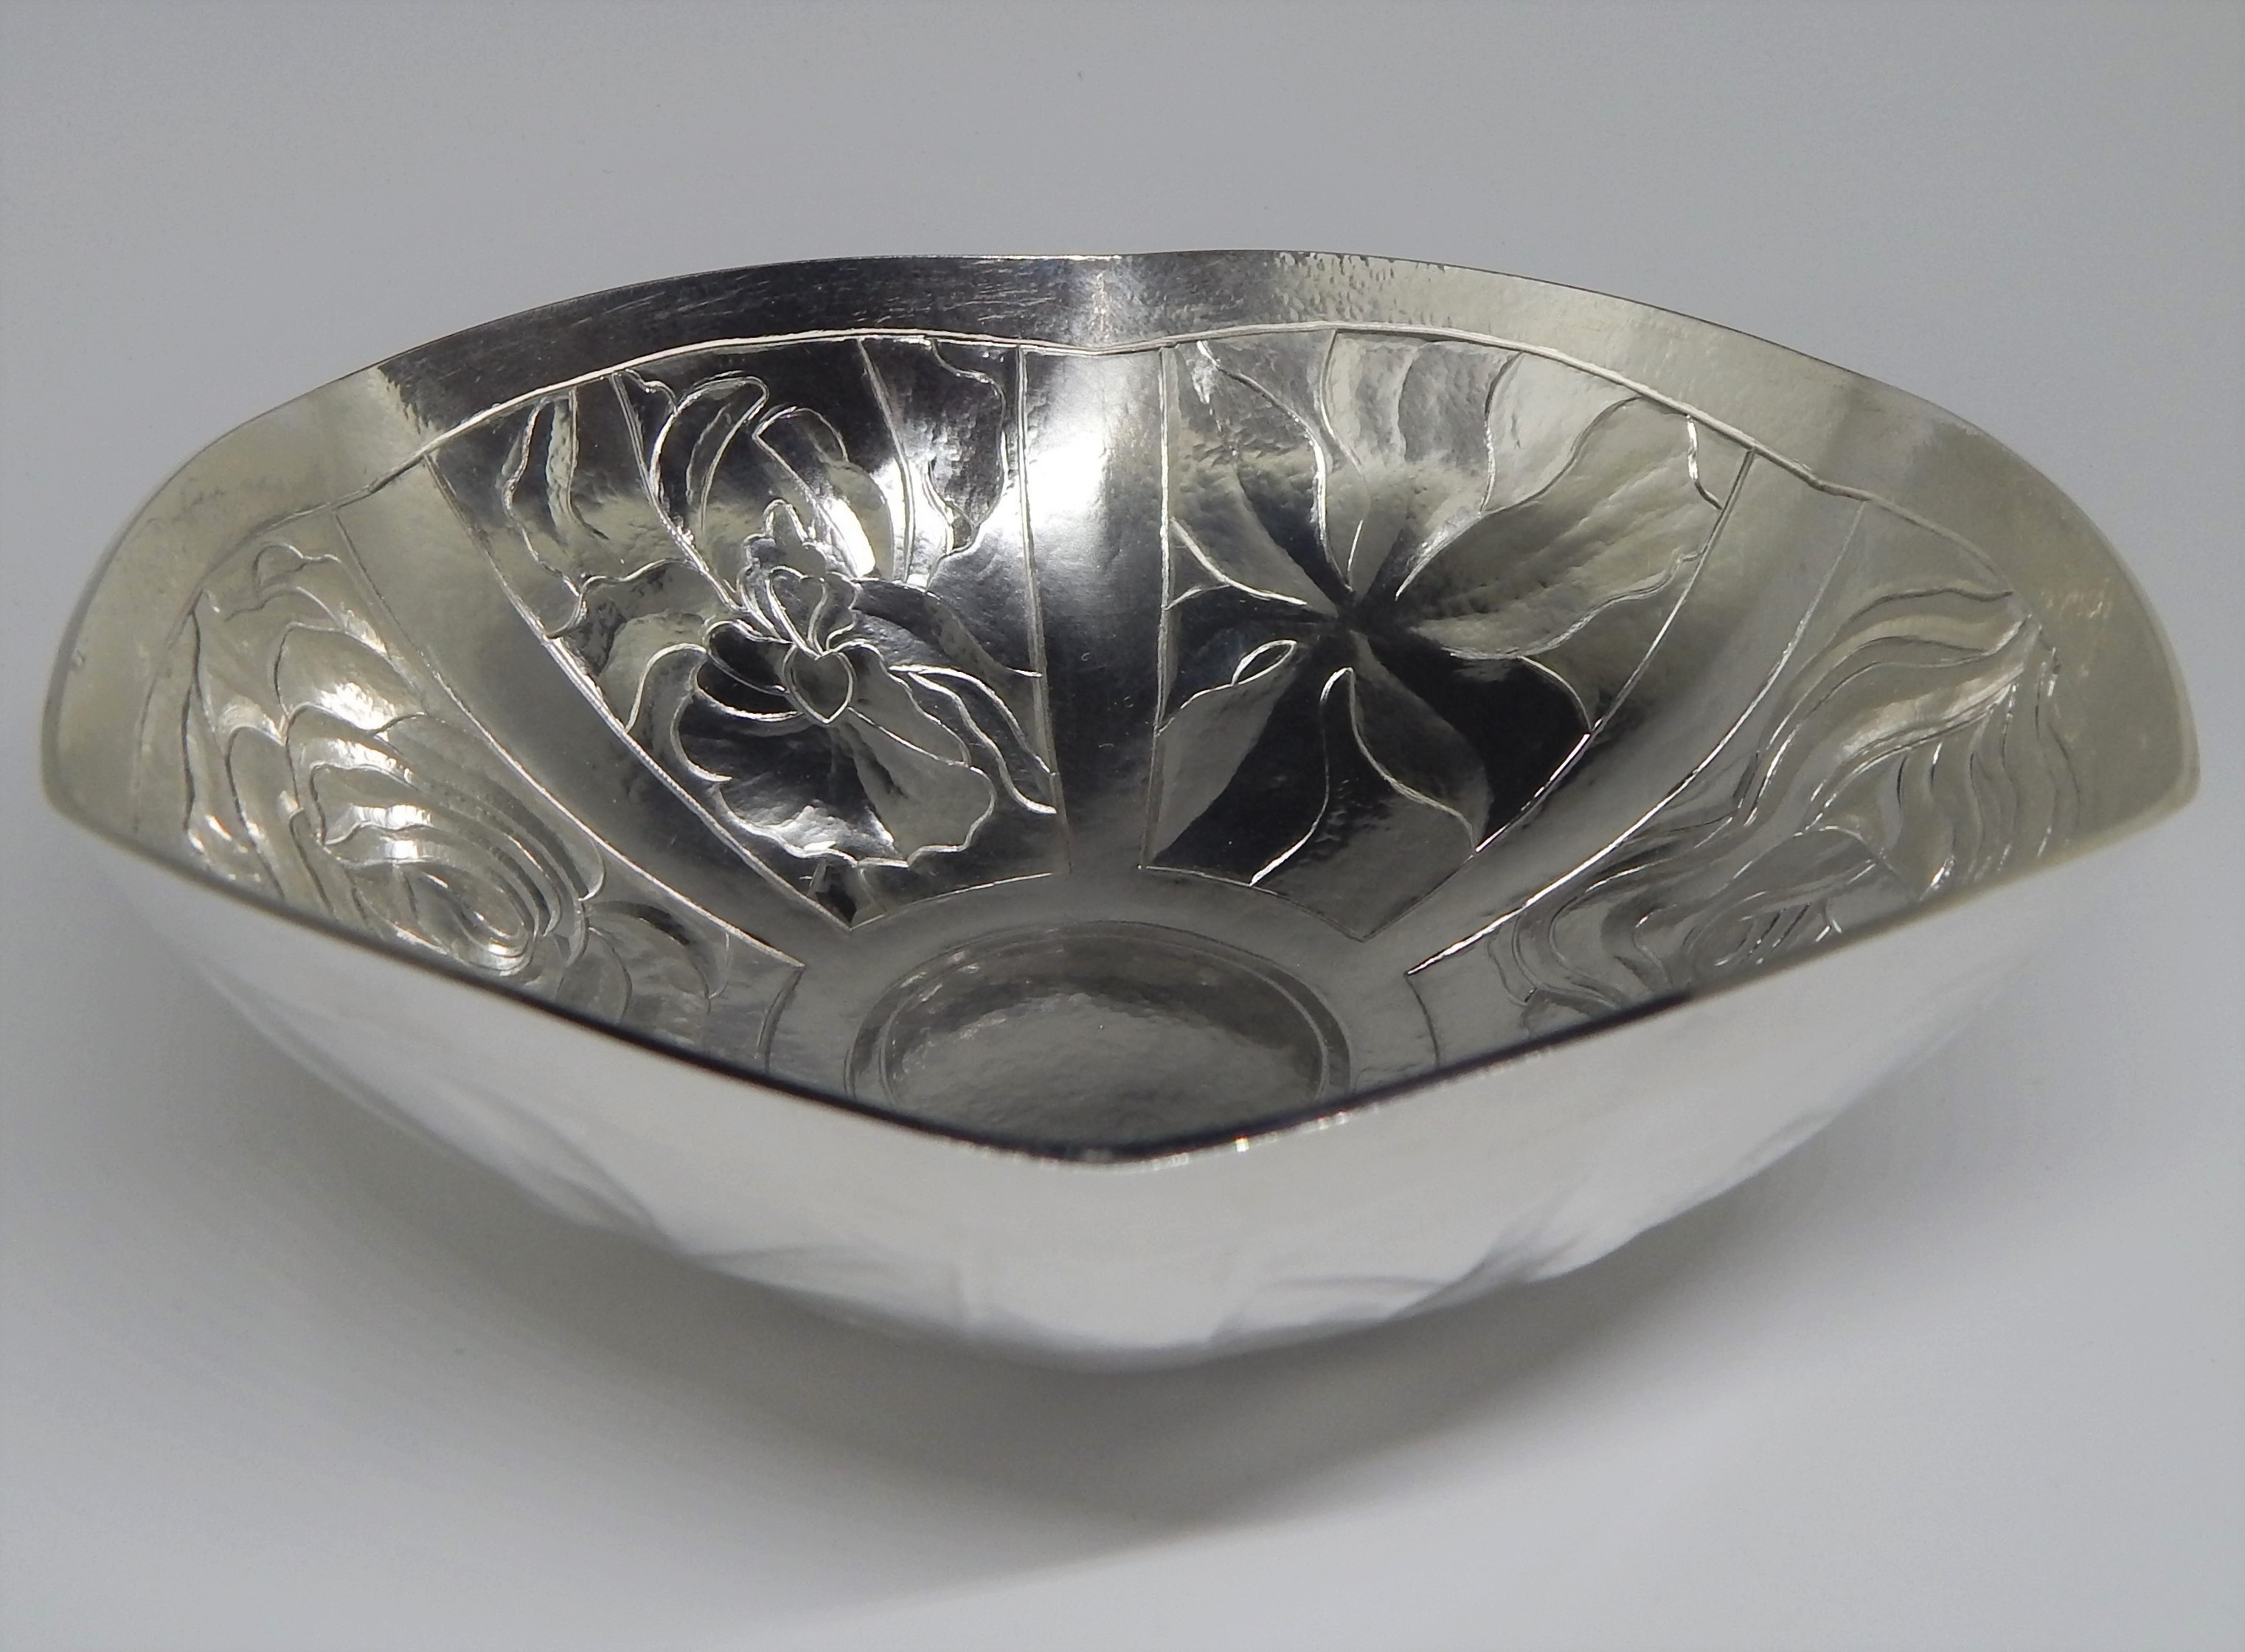 Chased Silver Bowl